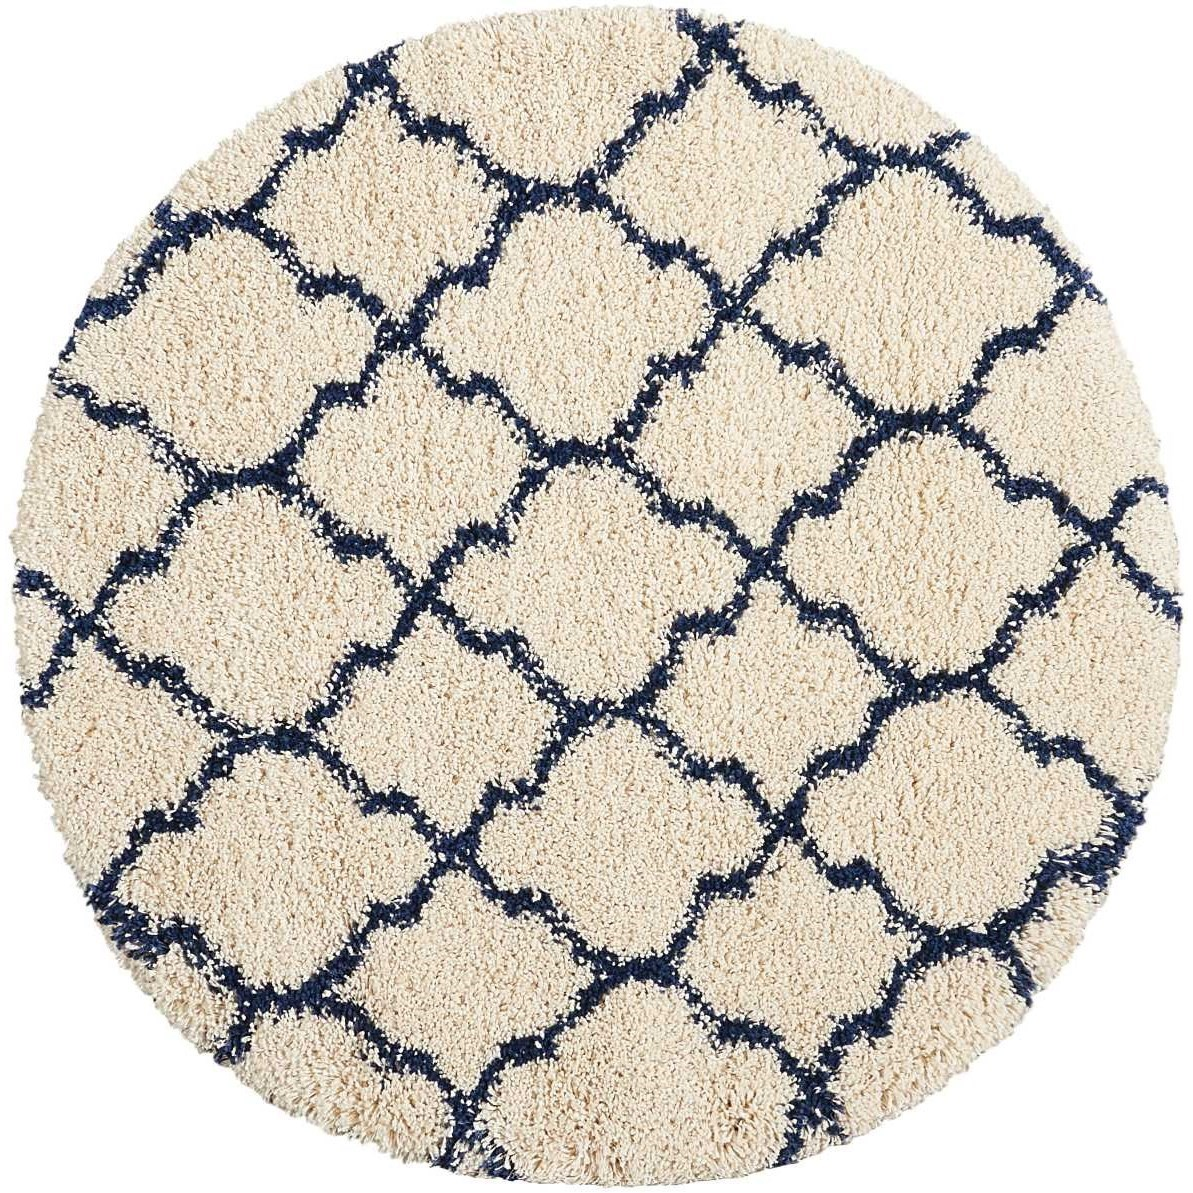 Amore Amore AMOR2 Blue and Ivory 4' Round Area Rug by Nourison at Home Collections Furniture